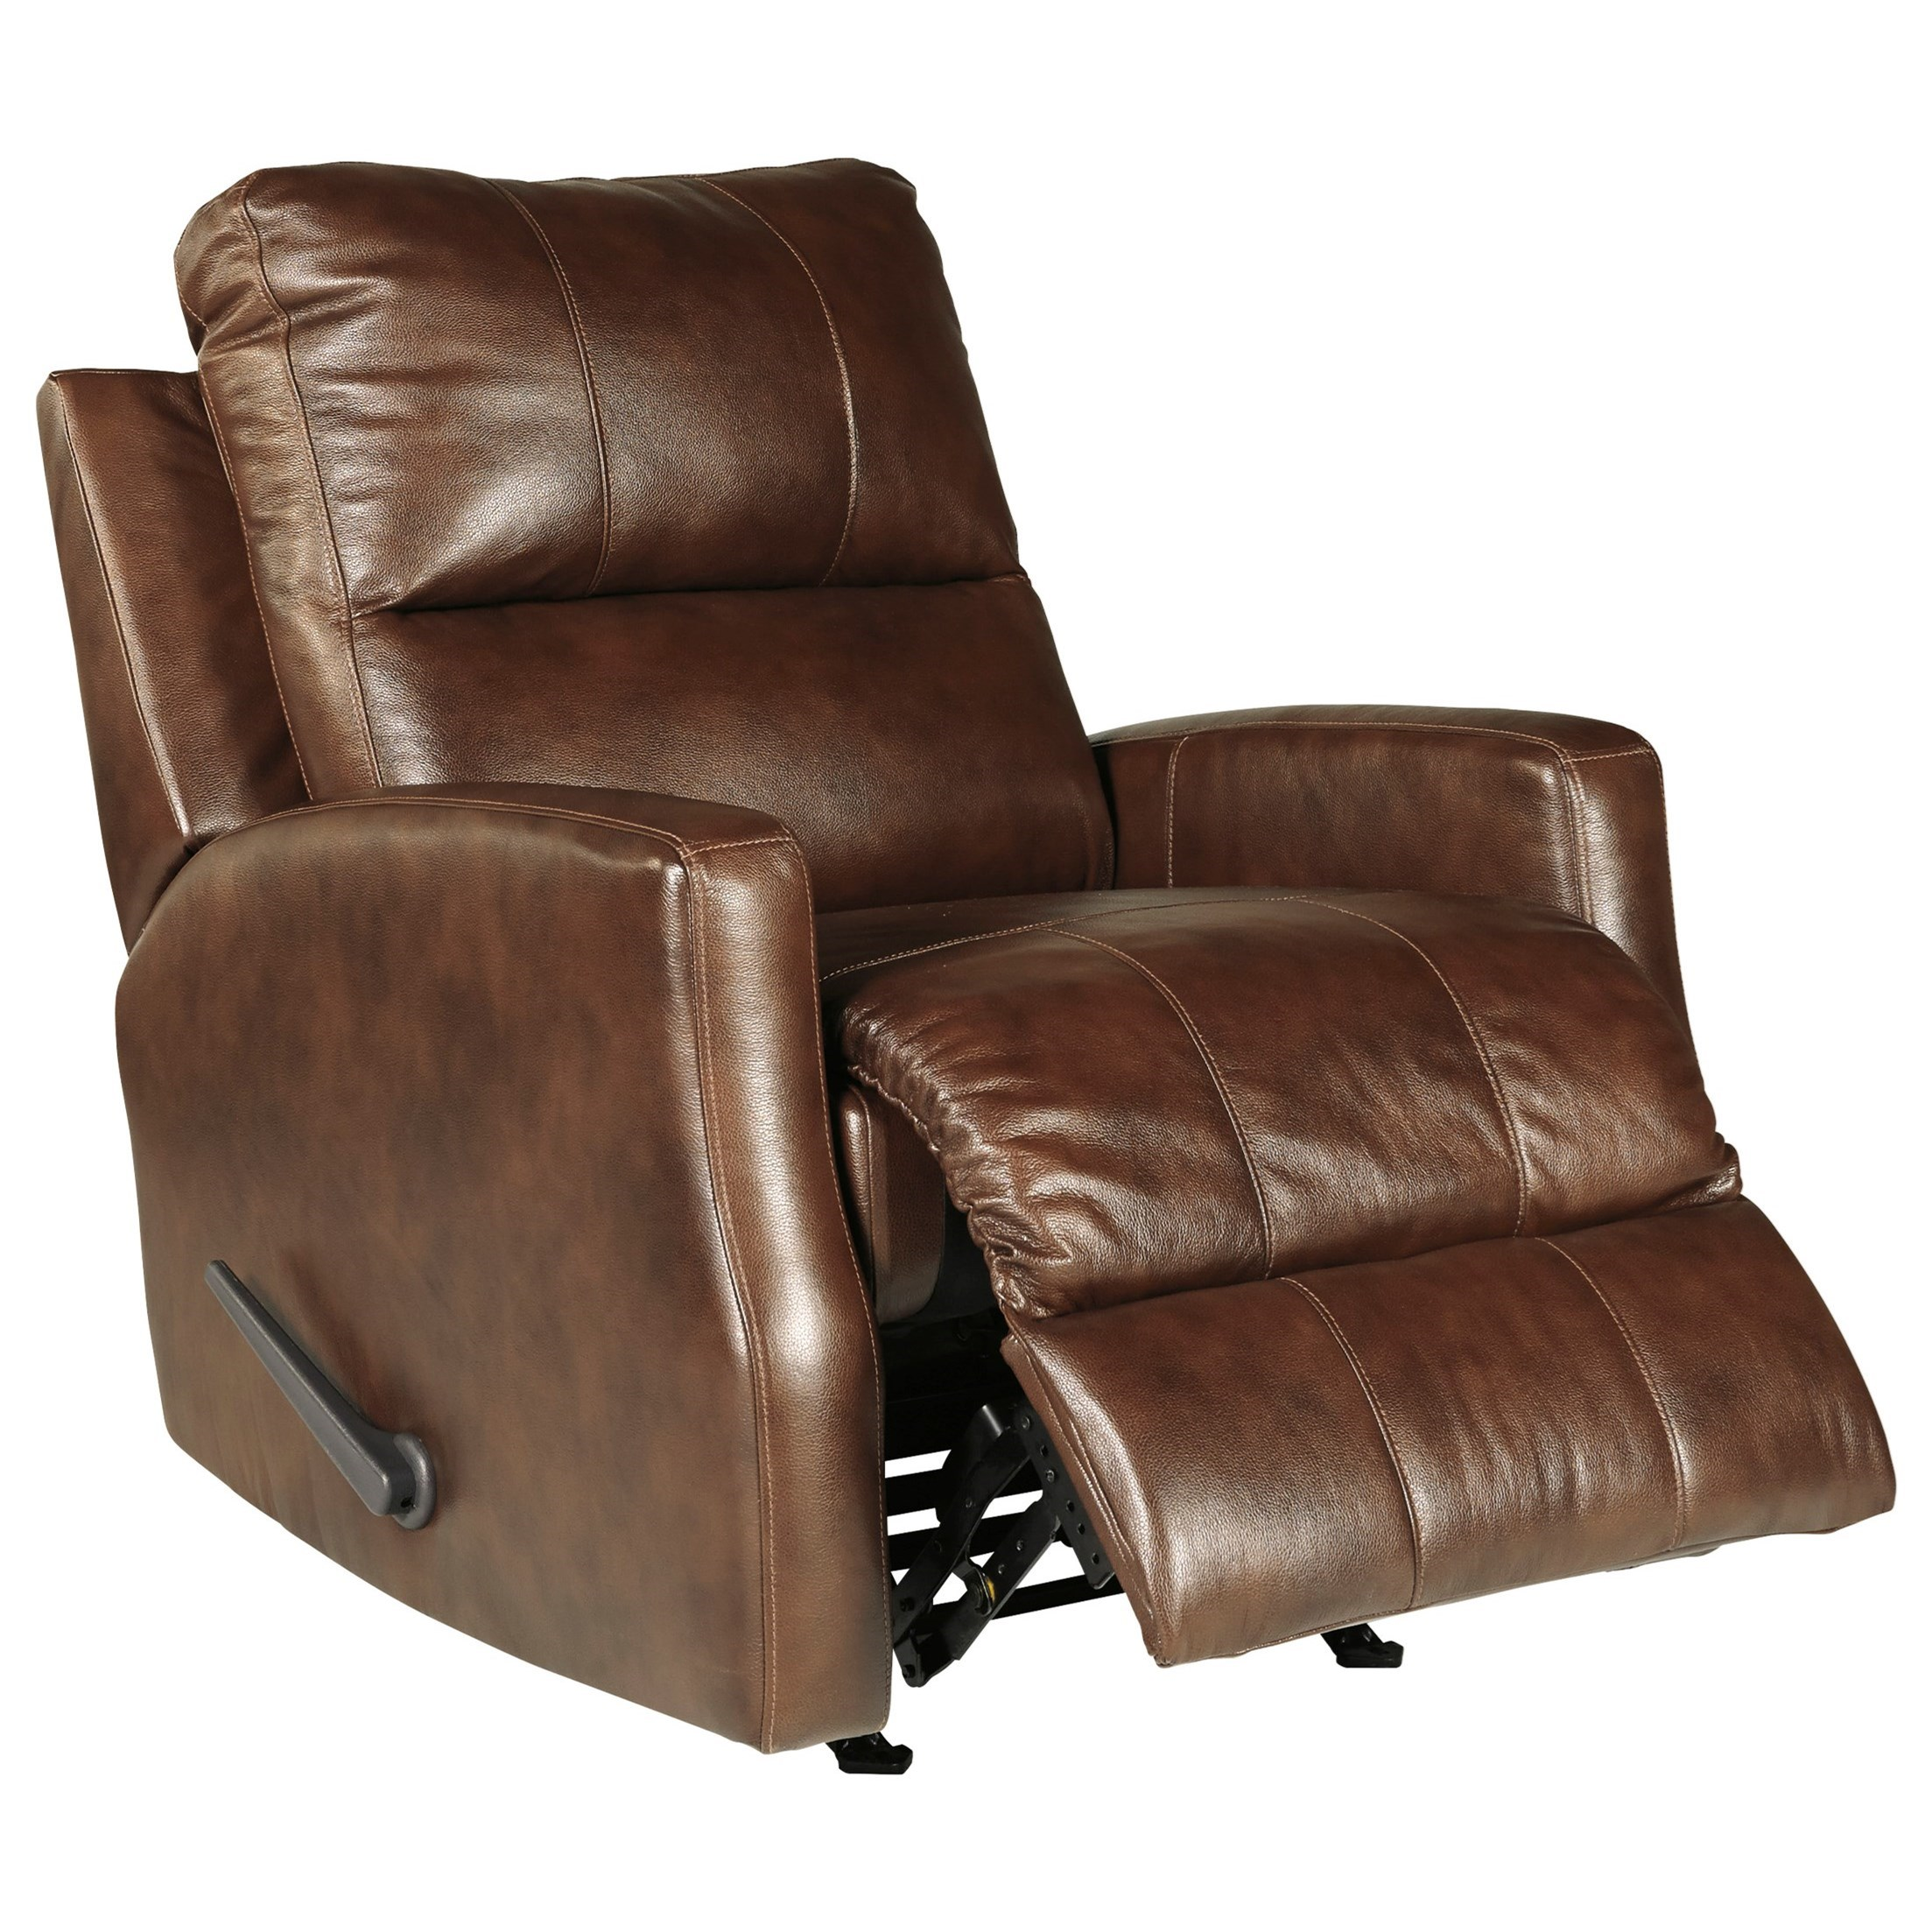 Signature Design By Ashley Gulfbay Leather Match Rocker Recliner With Track Arms Royal